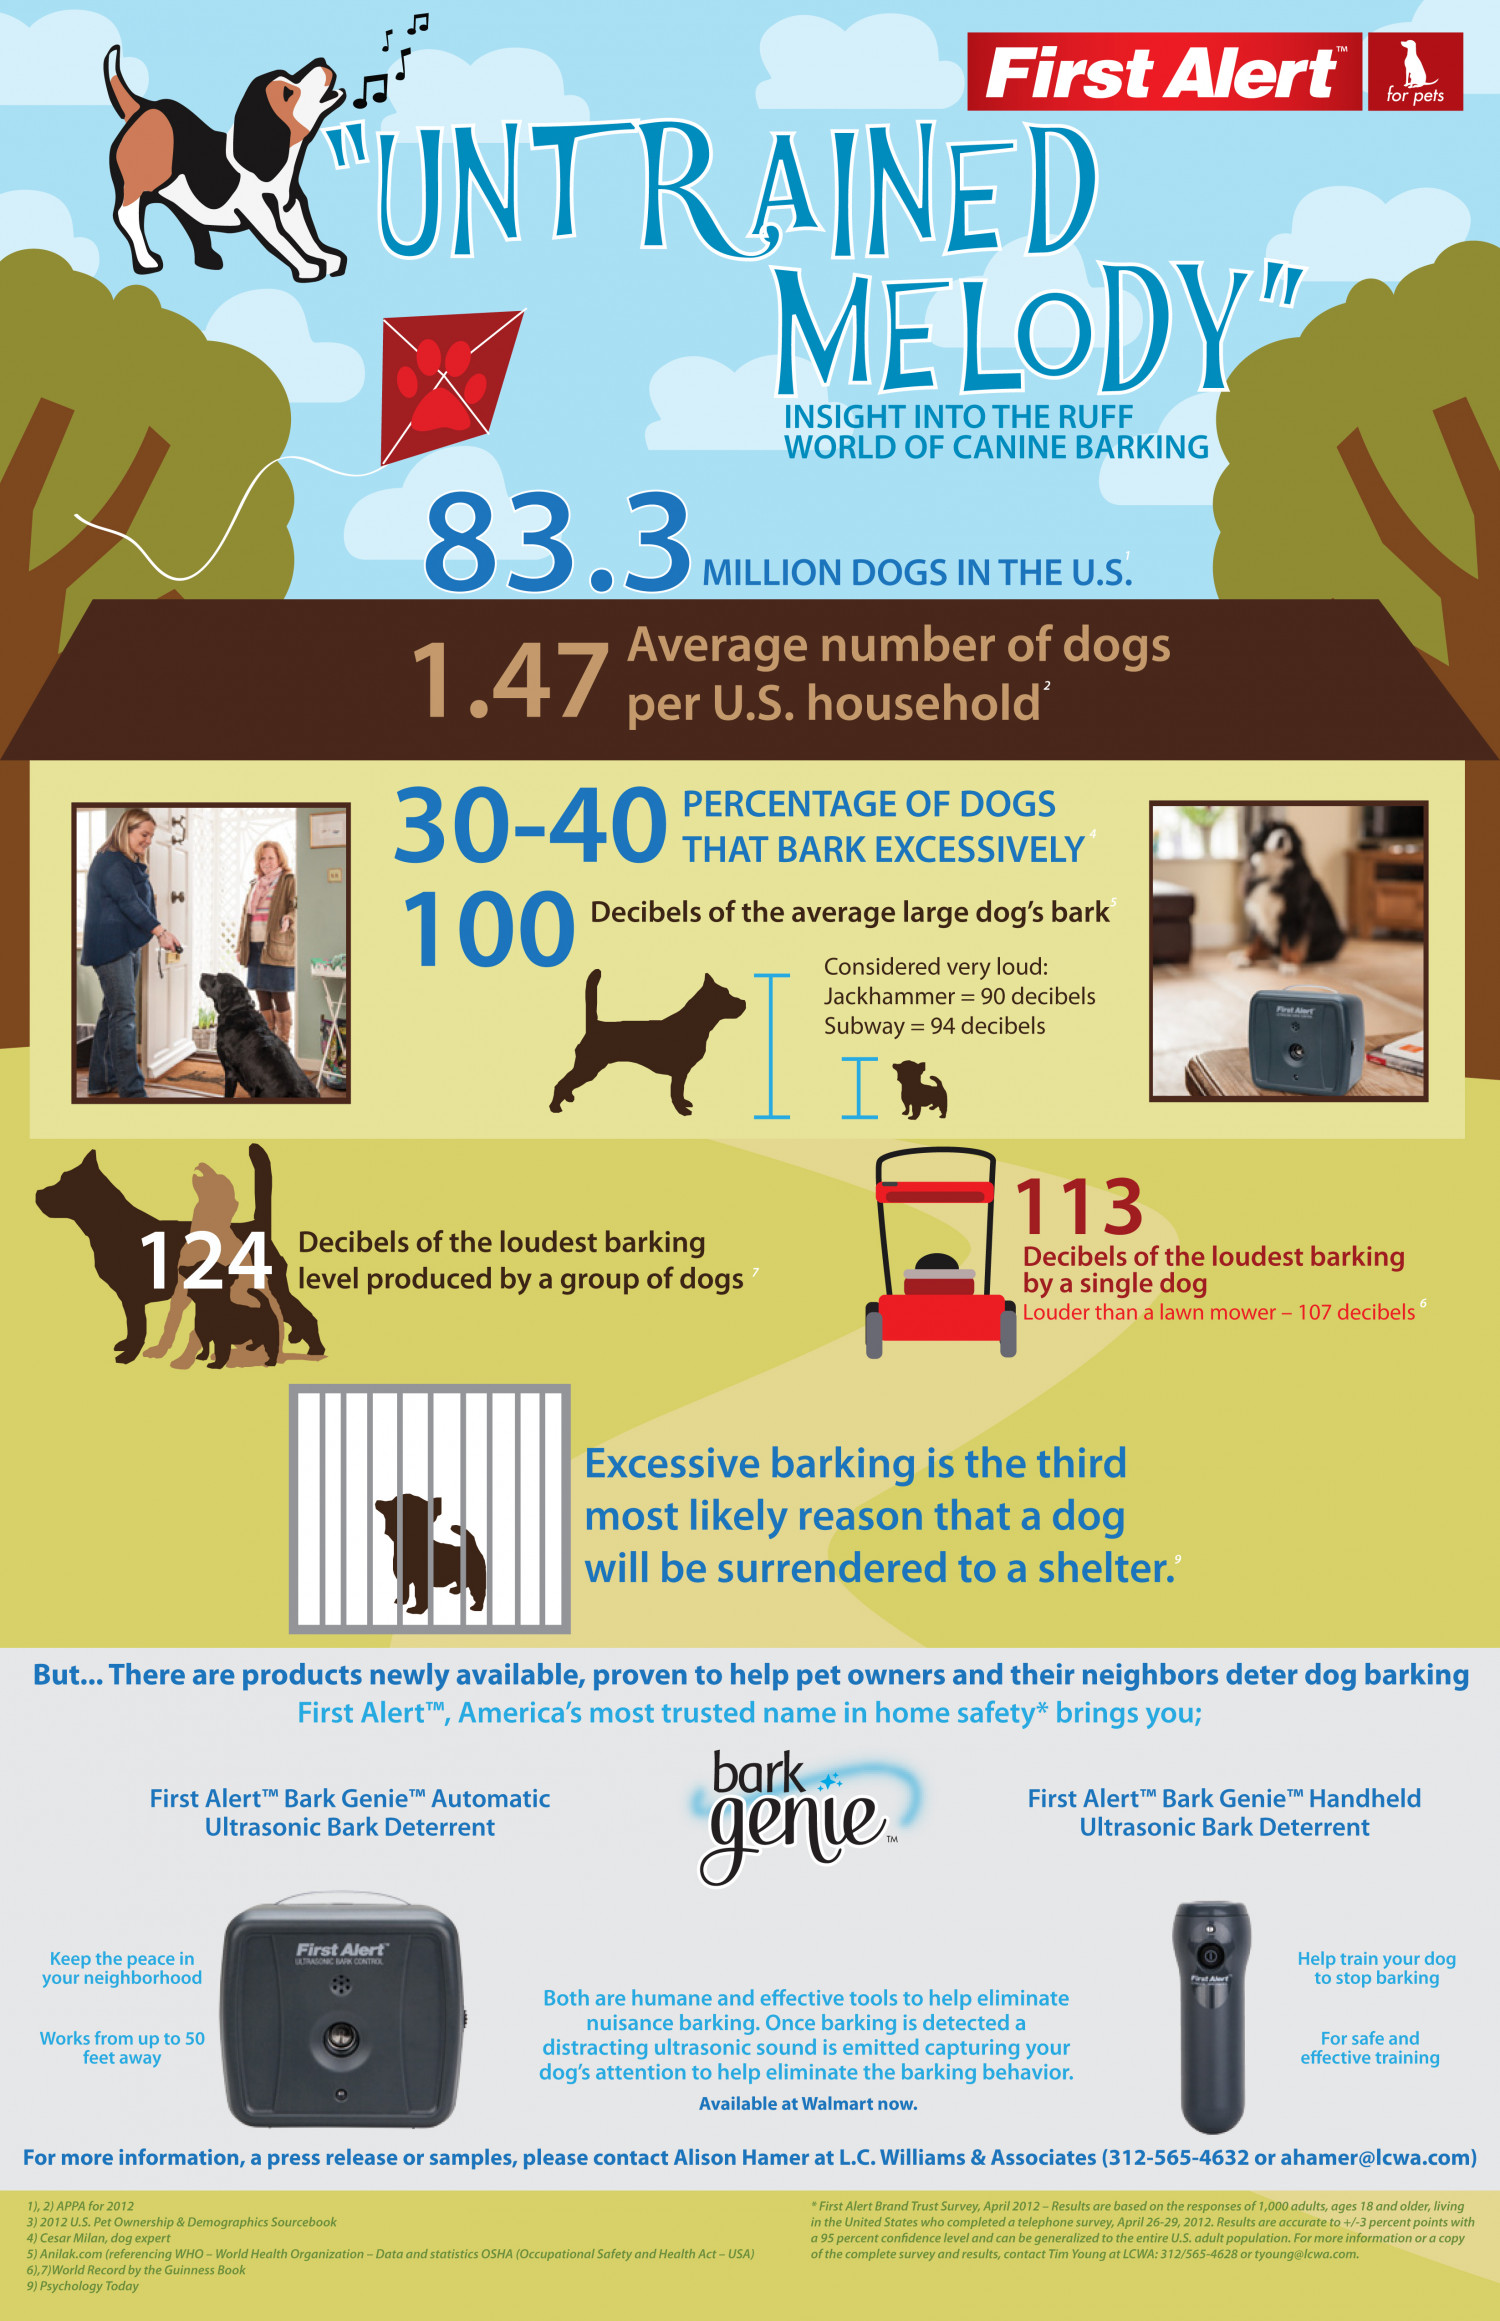 """Untrained Melody"" - Insight into the Ruff World of Canine Barking Infographic"